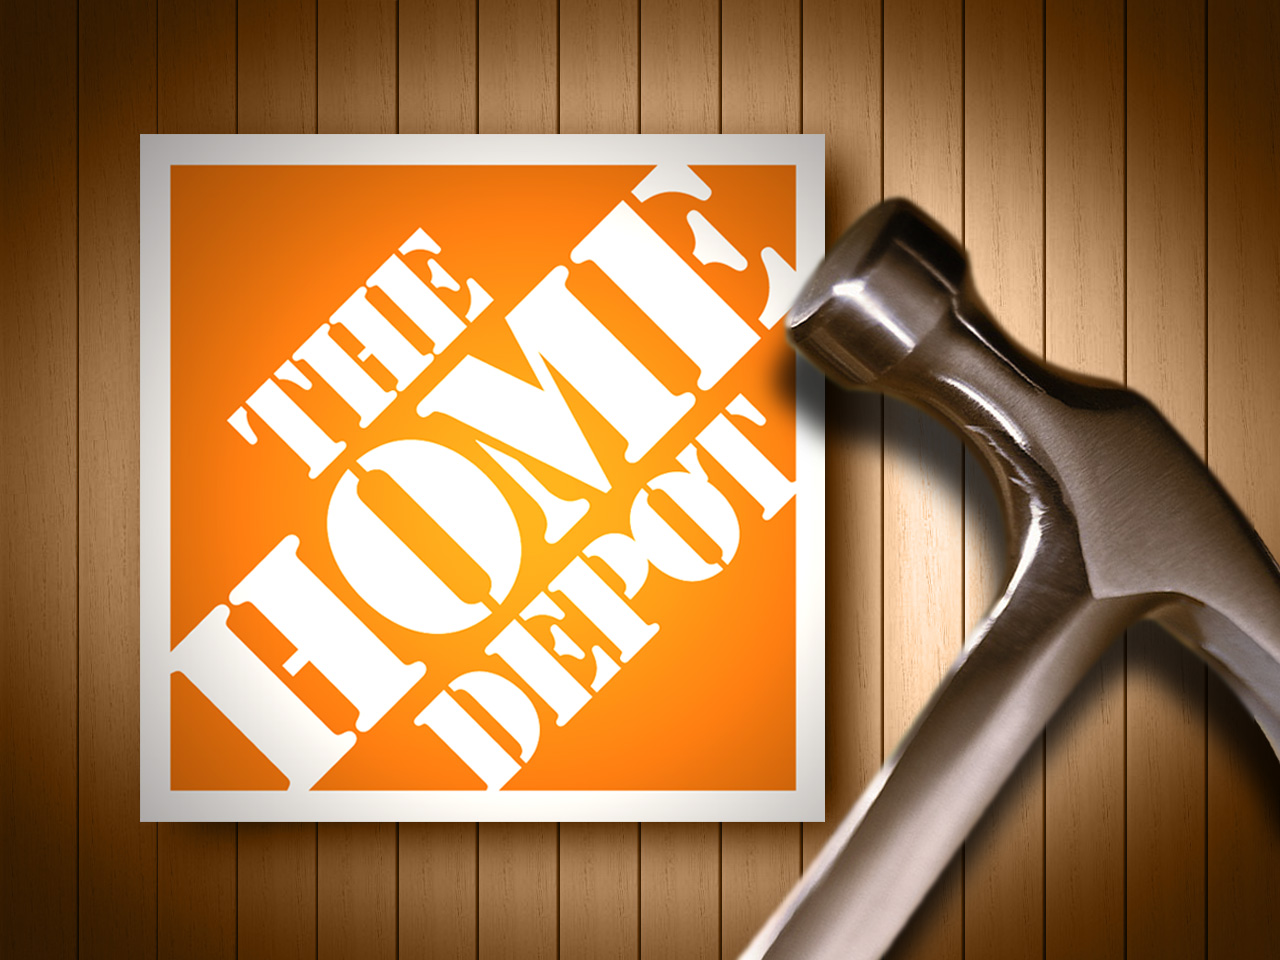 Grand Opening Of St Croix Home Depot St Croix Virgin Islands - The home depot logo